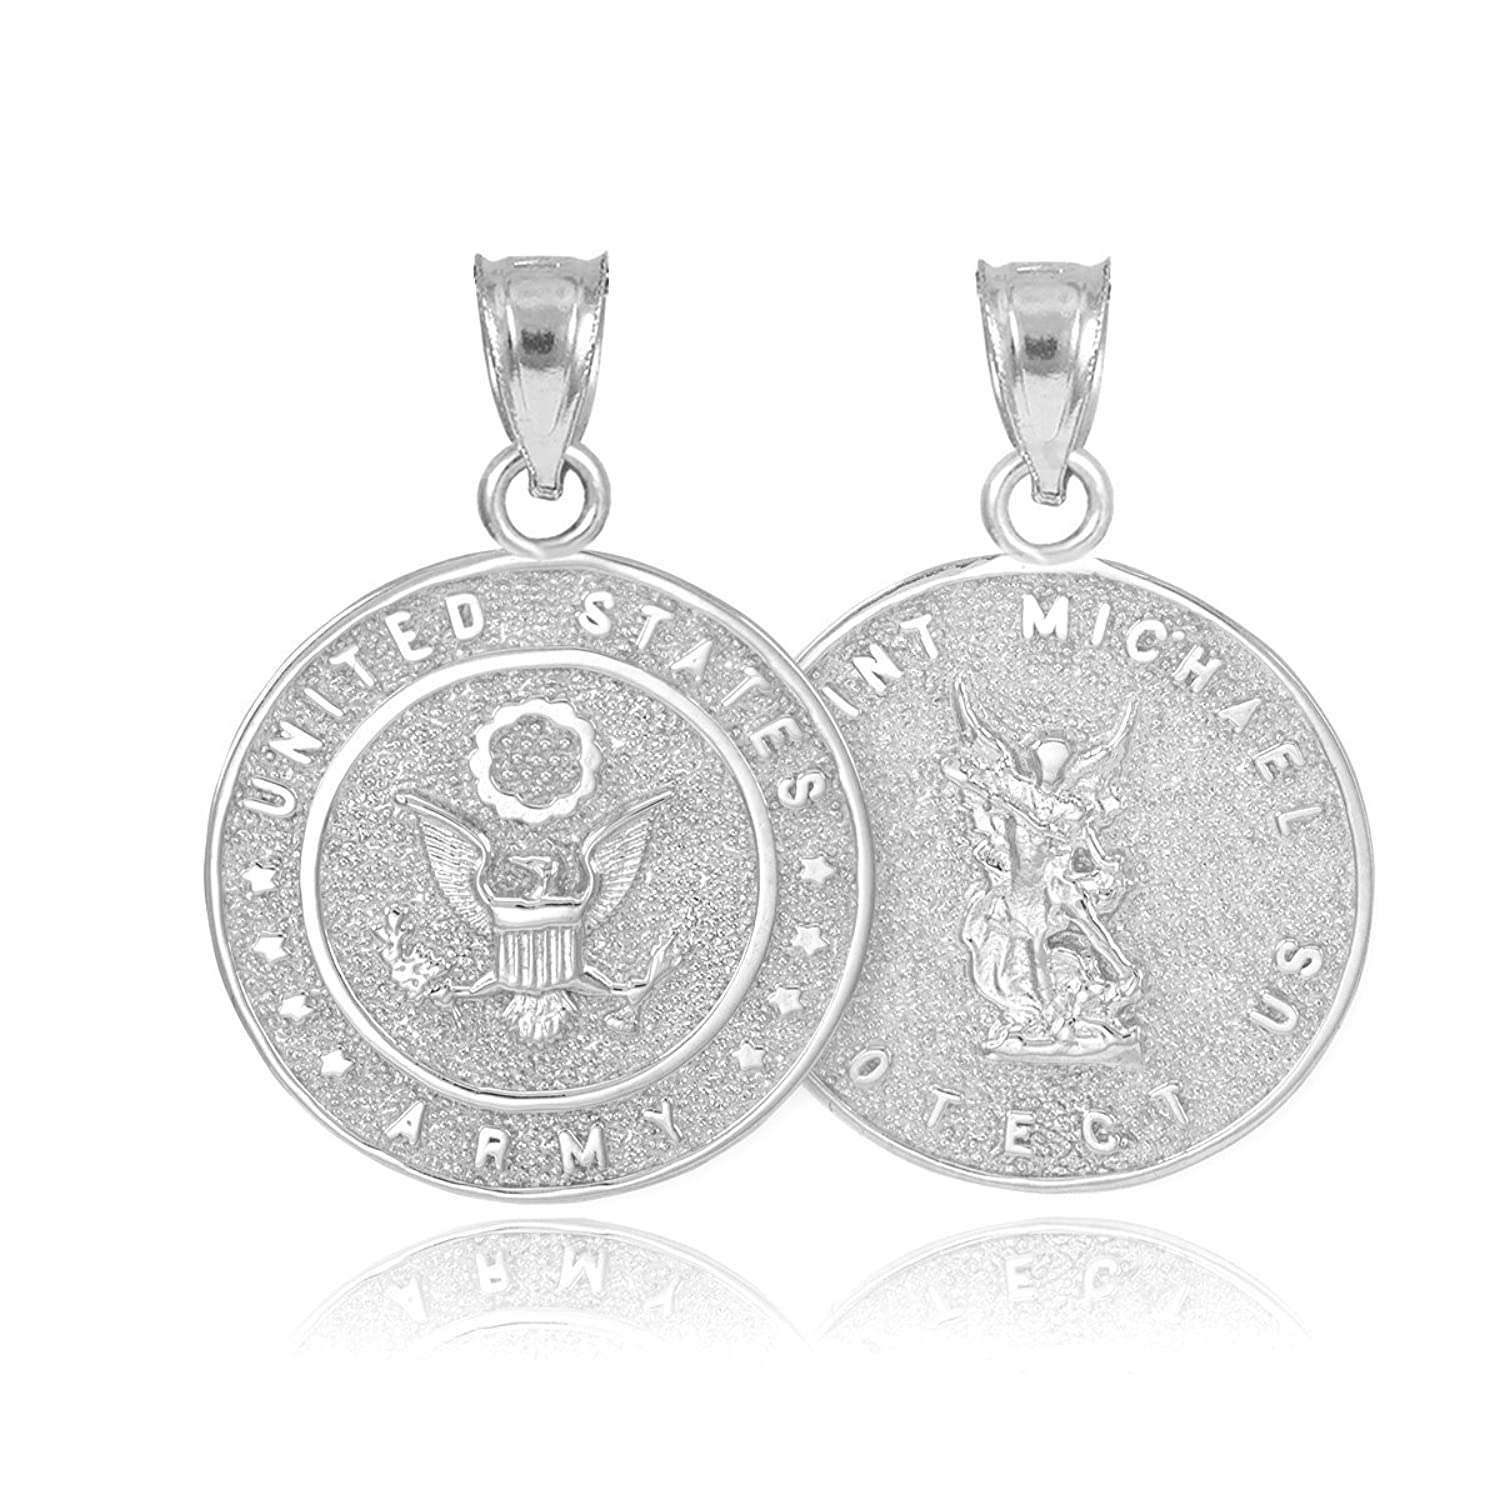 Fine 14k White Gold St Michael Medal Protection Charm US Army Reversible Necklace Pendant